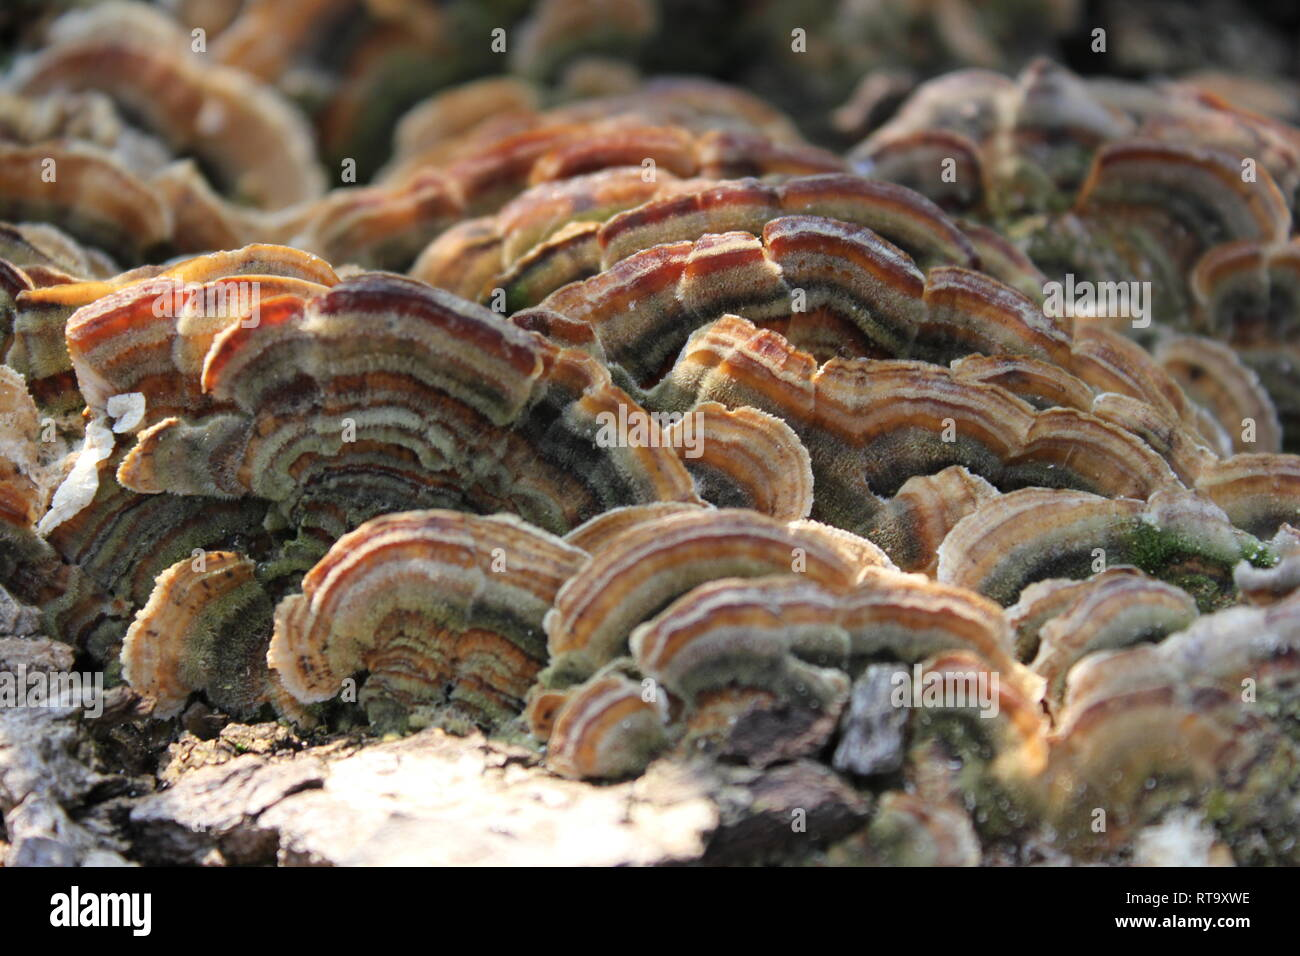 Beautiful cultivated Trametes versicolor, turkey tail mushroom fungi plant at the Garfield Park Conservatory in Chicago, Illinois. - Stock Image